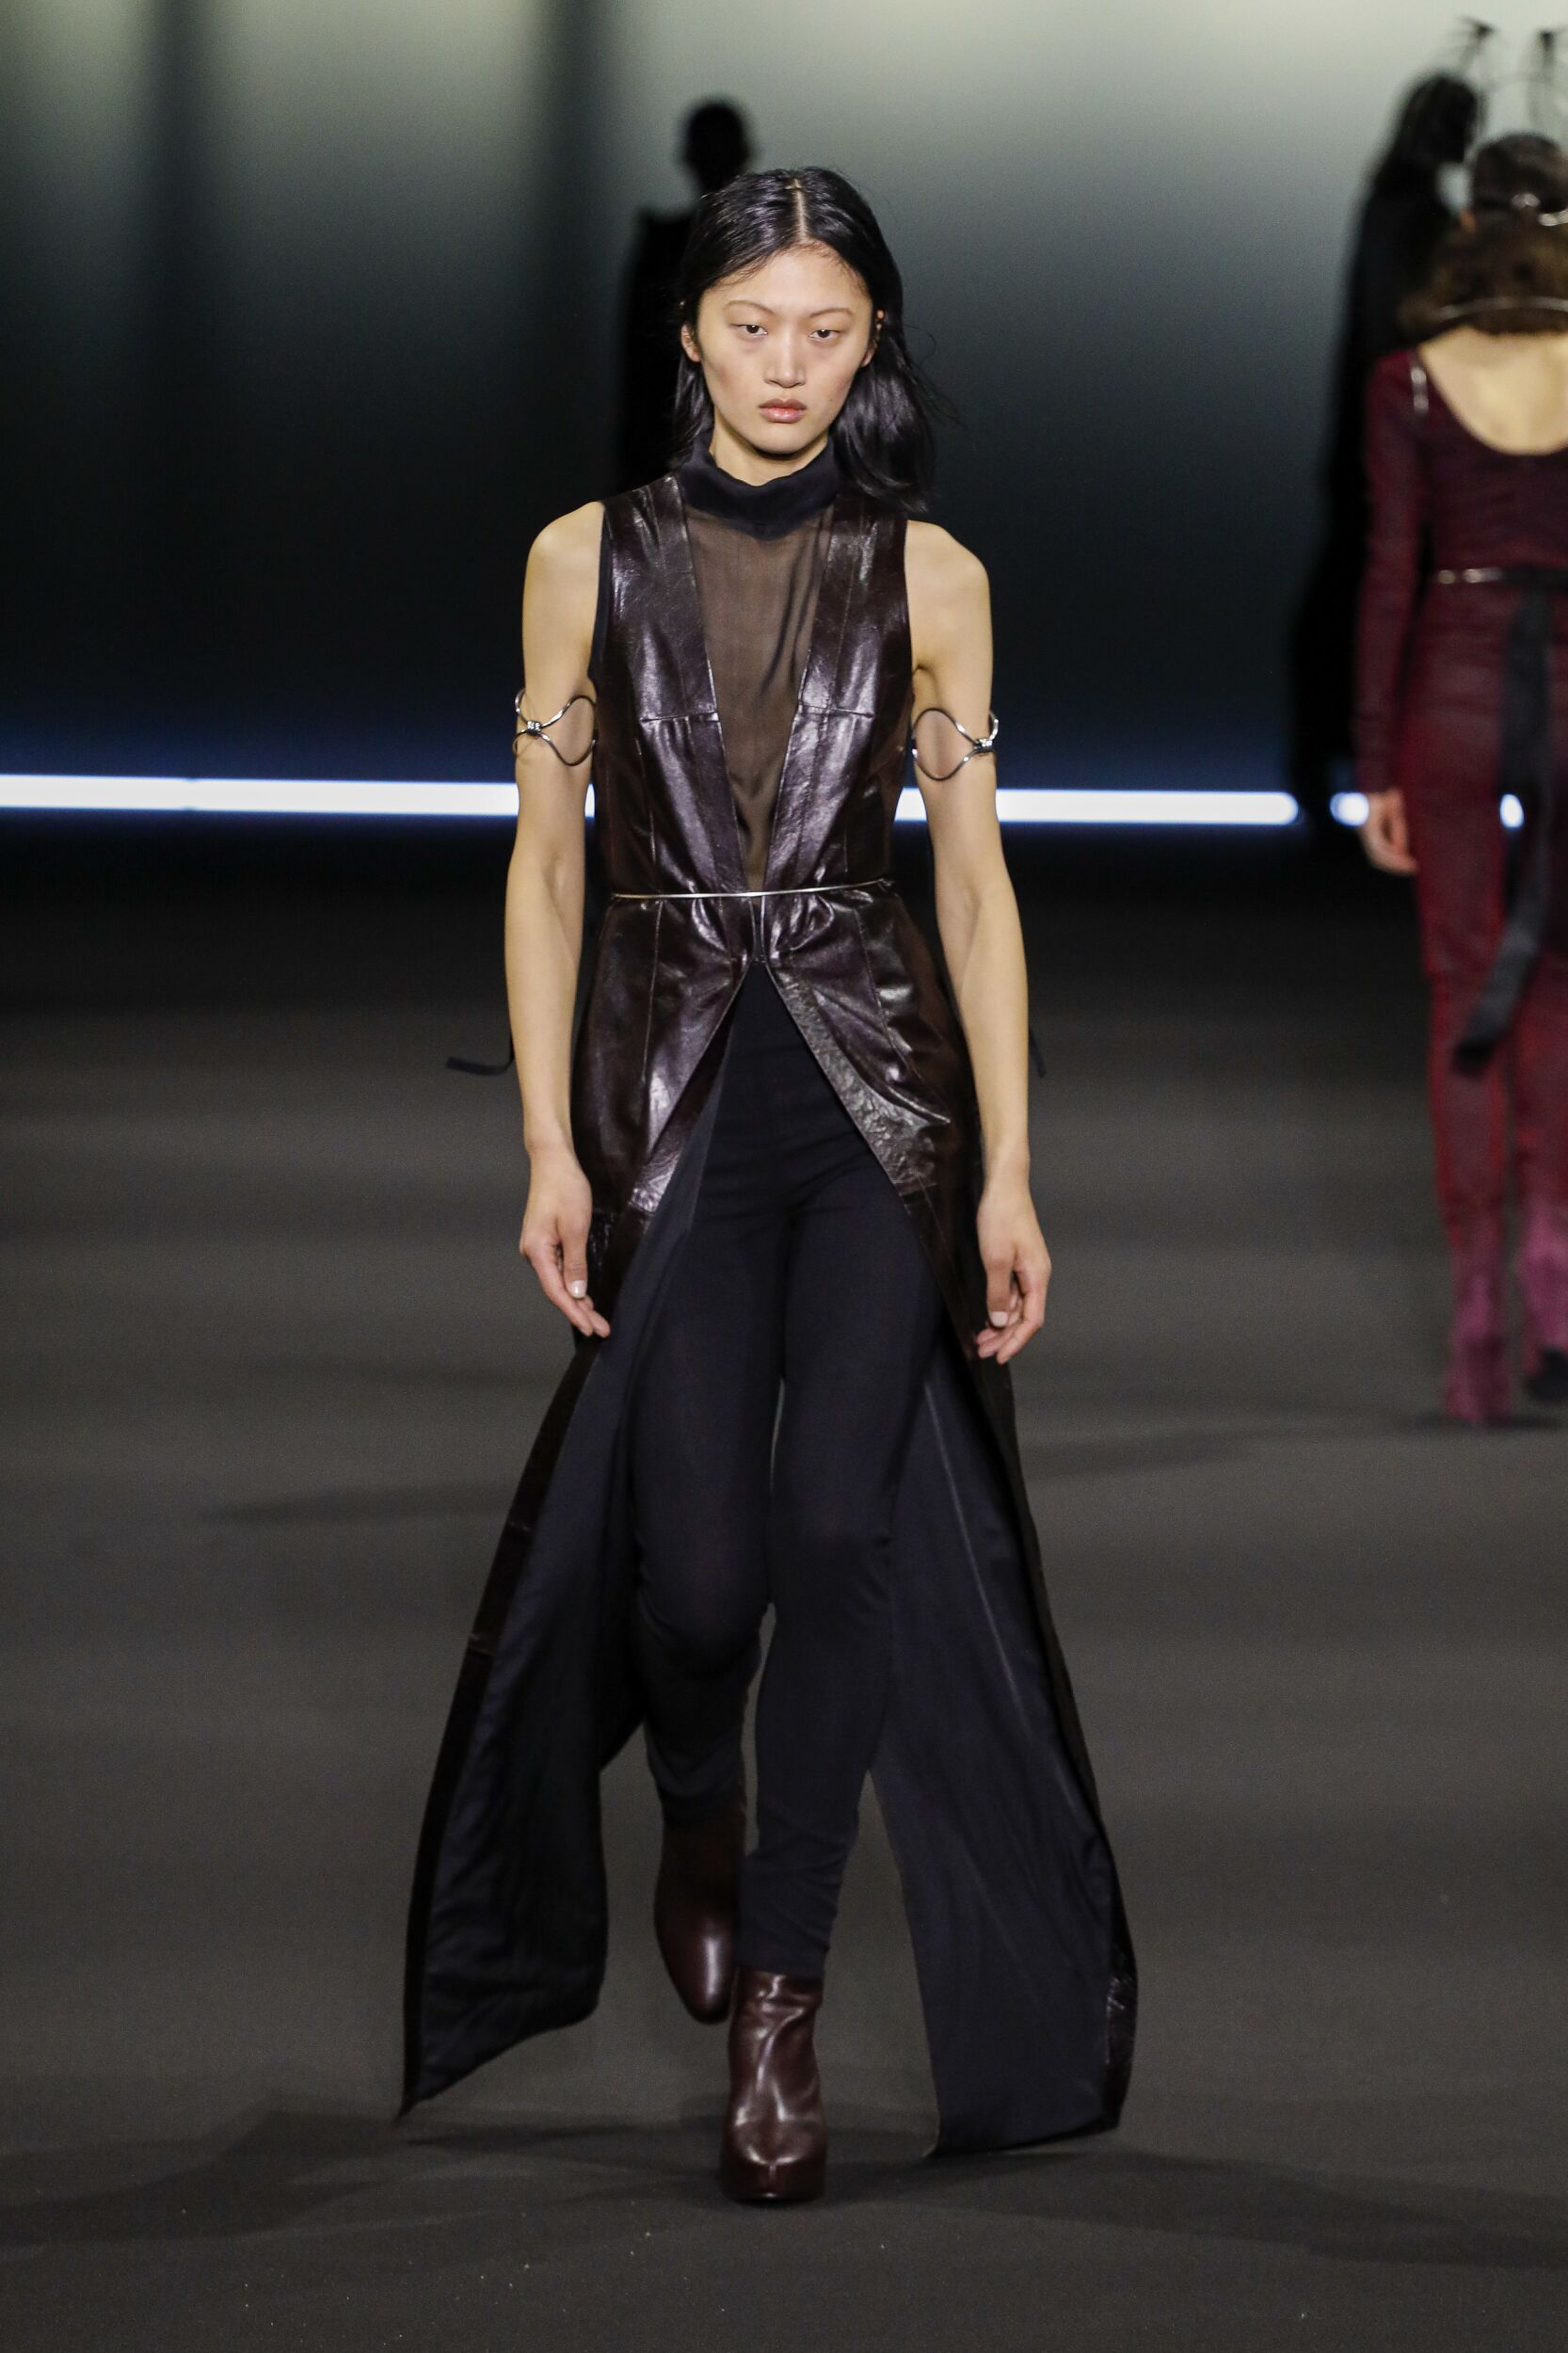 Runway Ann Demeulemeester Fall Winter 2020 Women's Collection Paris Fashion Week